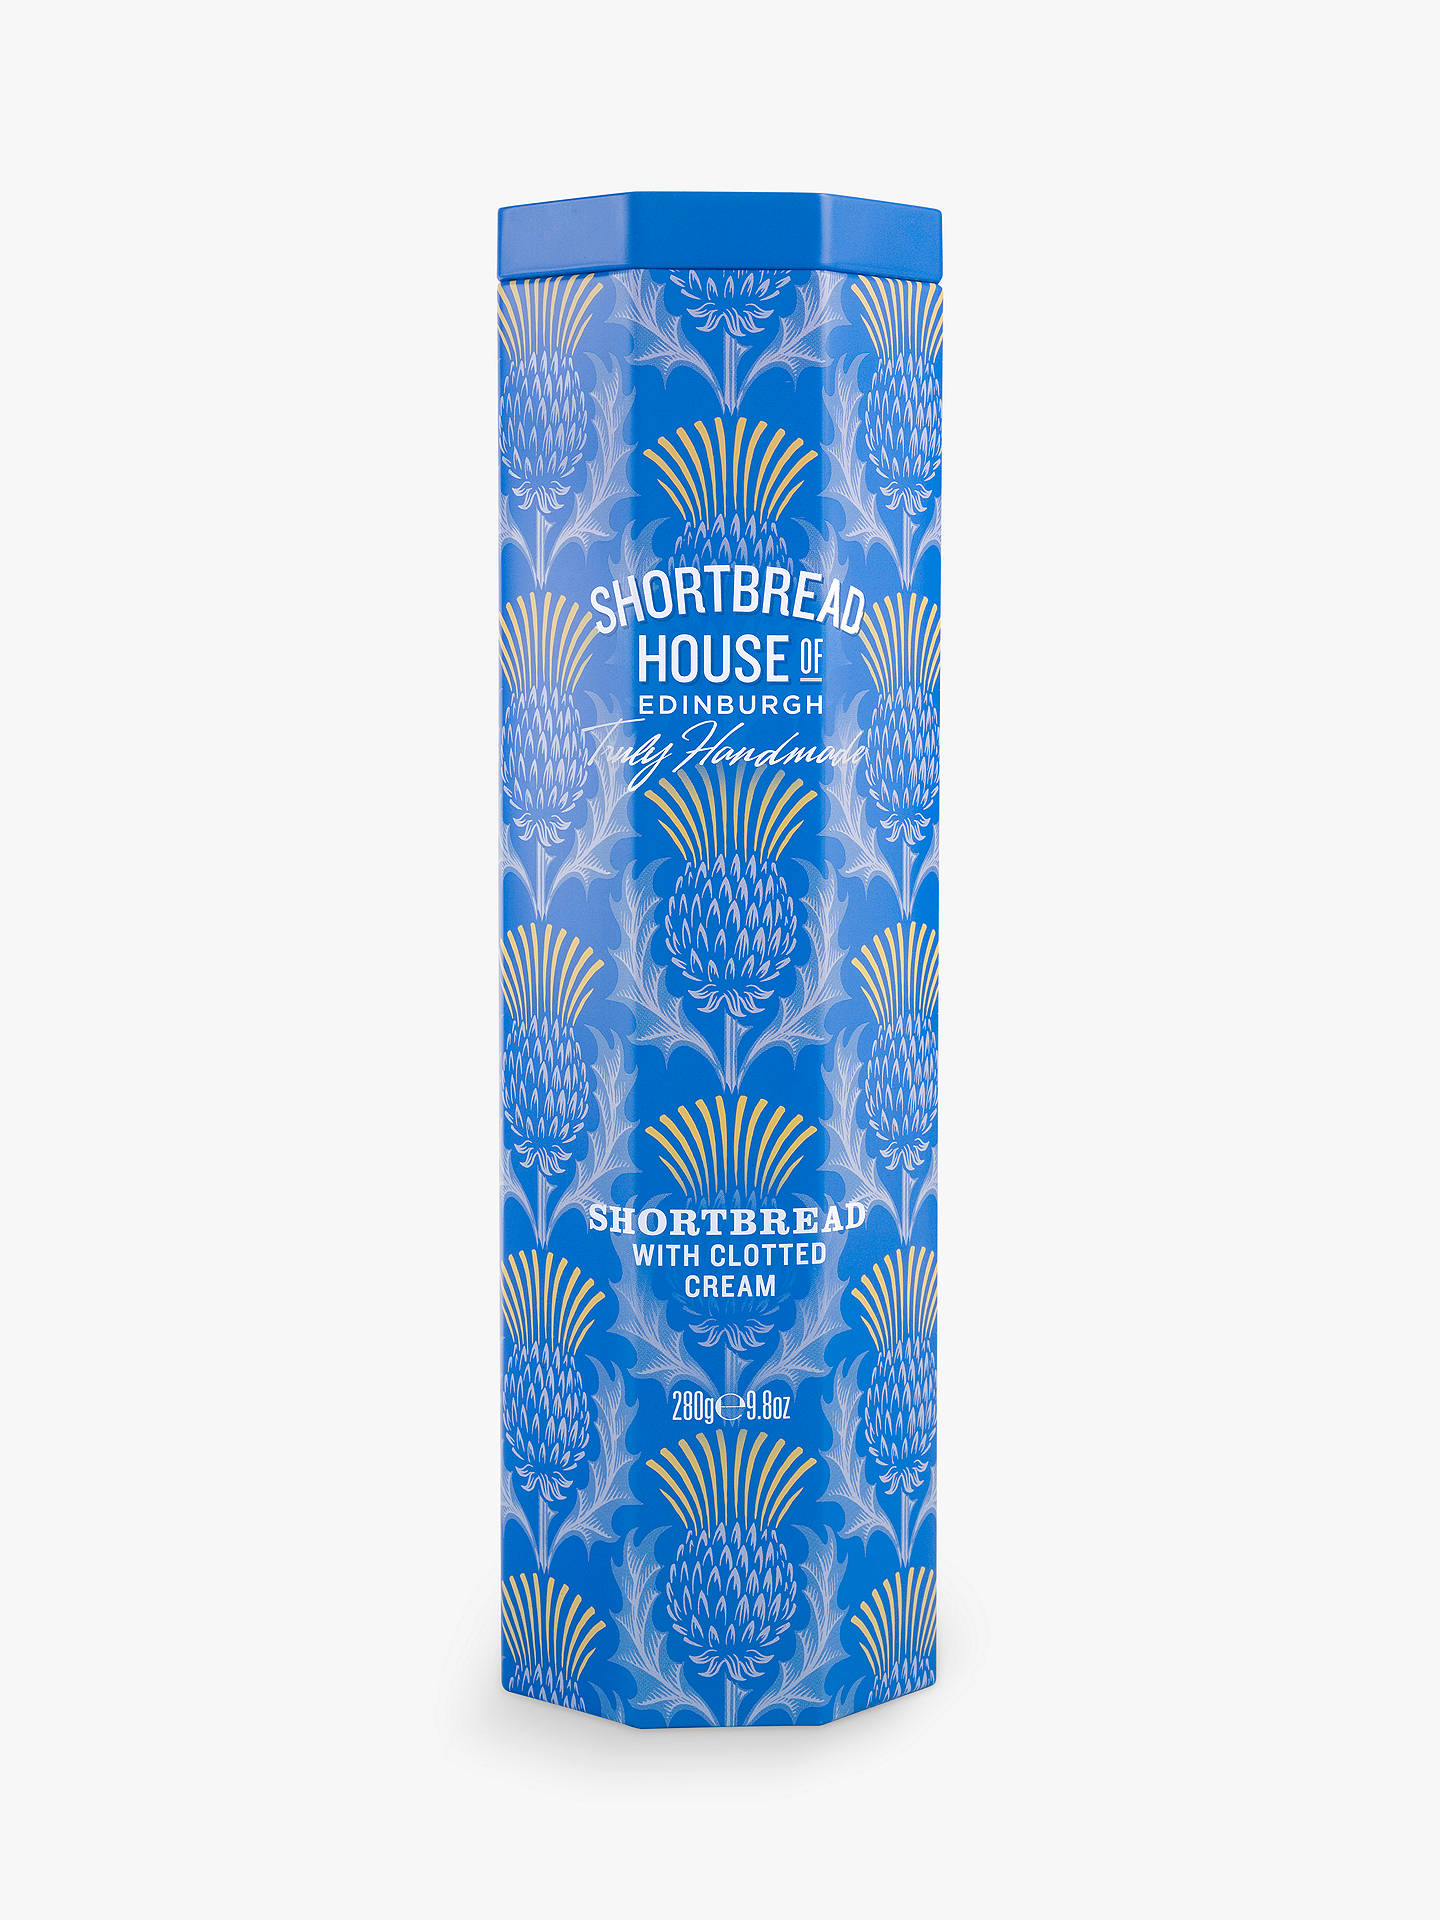 Buy Shortbread House of Edinburgh Clotted Cream Shortbread, 280g Online at johnlewis.com